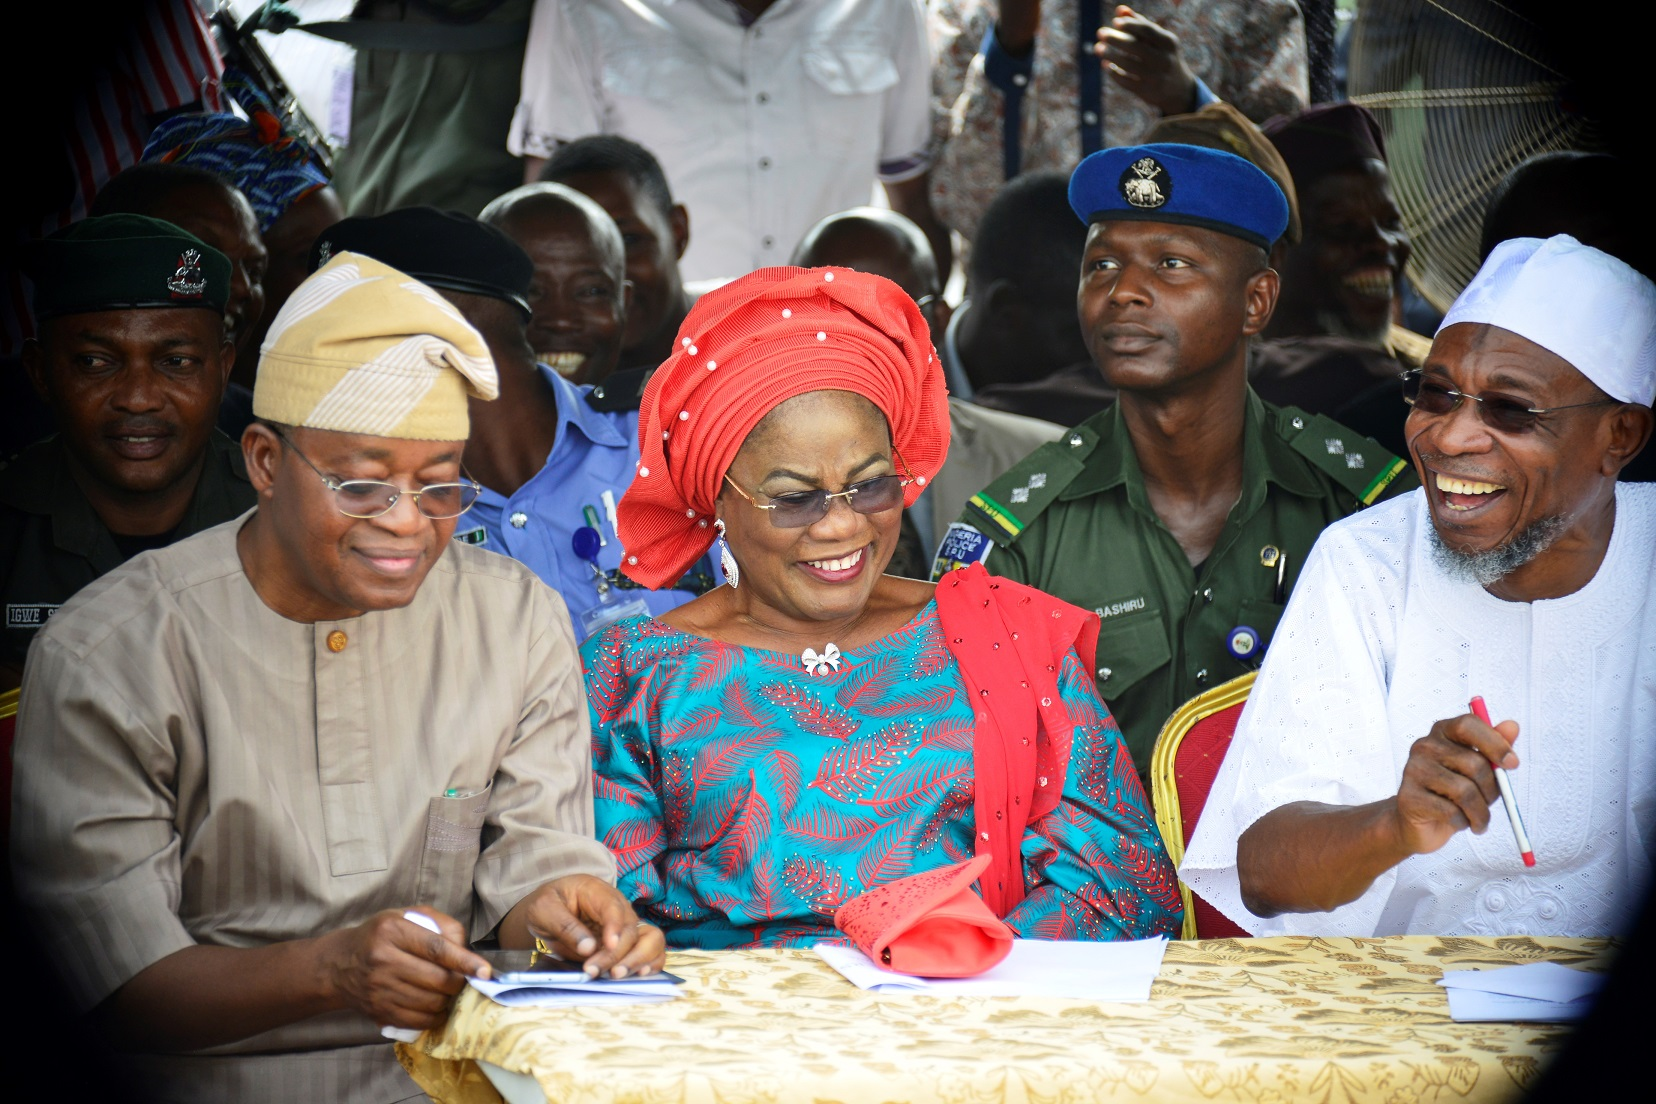 From right, Governor State of Osun, Ogbeni Rauf Aregbesola; his deputy, Mrs Titi Laoye-Tomori and Chief of Staff to the Governor, Alhaji Gboyega Oyetola, during an interaction between Mr Governor and Farmers on how to improve on agriculture in Osun, organised by State Agriculture, Quick Impact Intervention Programme, at the Mandela Freedom Park, Osogbo